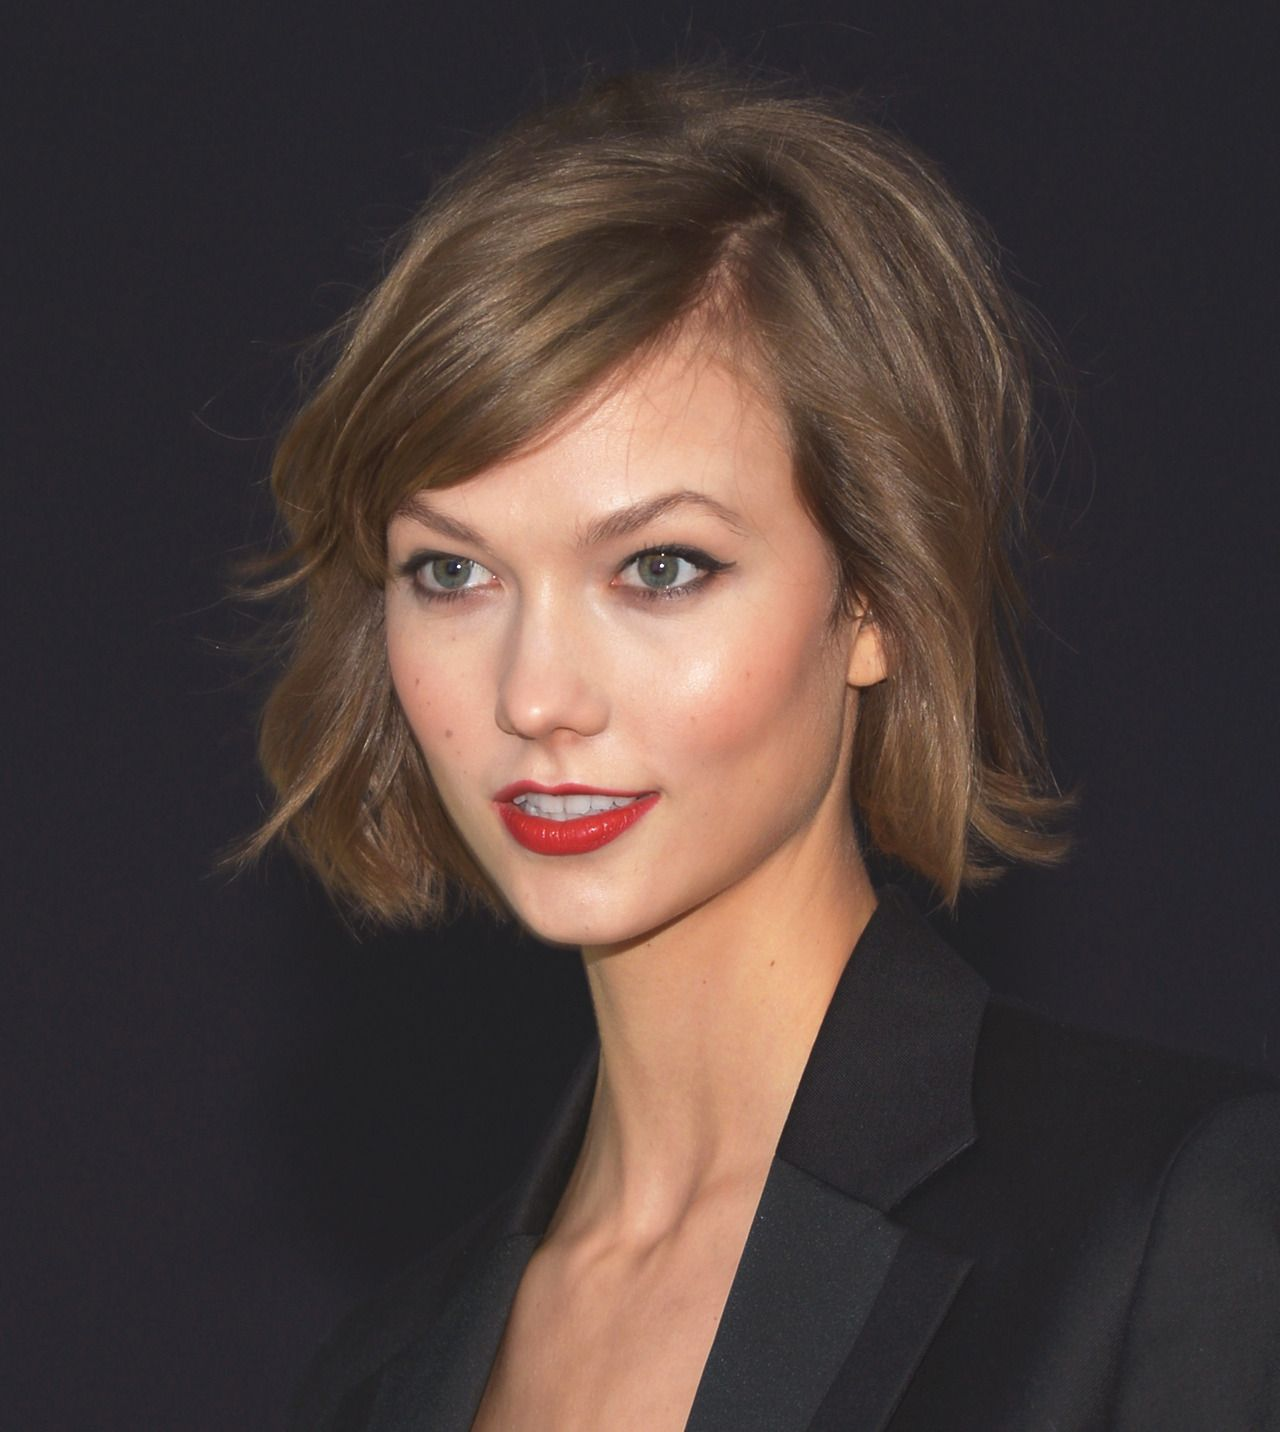 Karlie Kloss Karlie Kloss Pinterest Karlie Kloss And Makeup